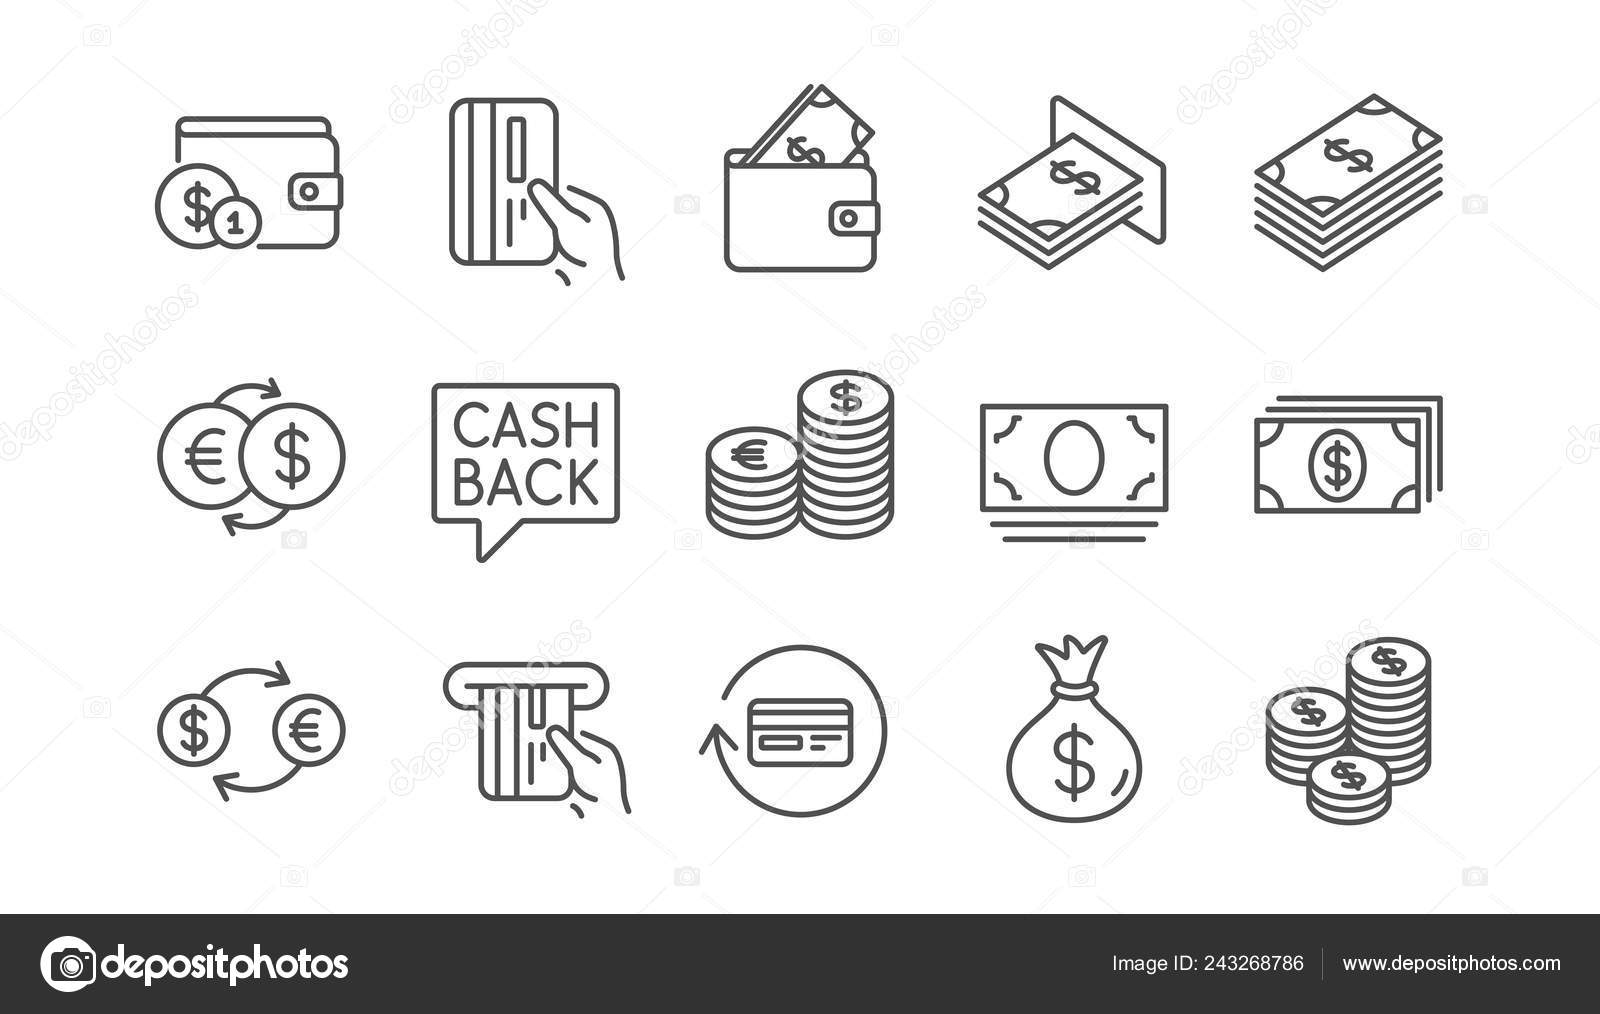 money payment line icons cash wallet coins account cashback linear stock vector c blankstock 243268786 money payment line icons cash wallet coins account cashback linear stock vector c blankstock 243268786